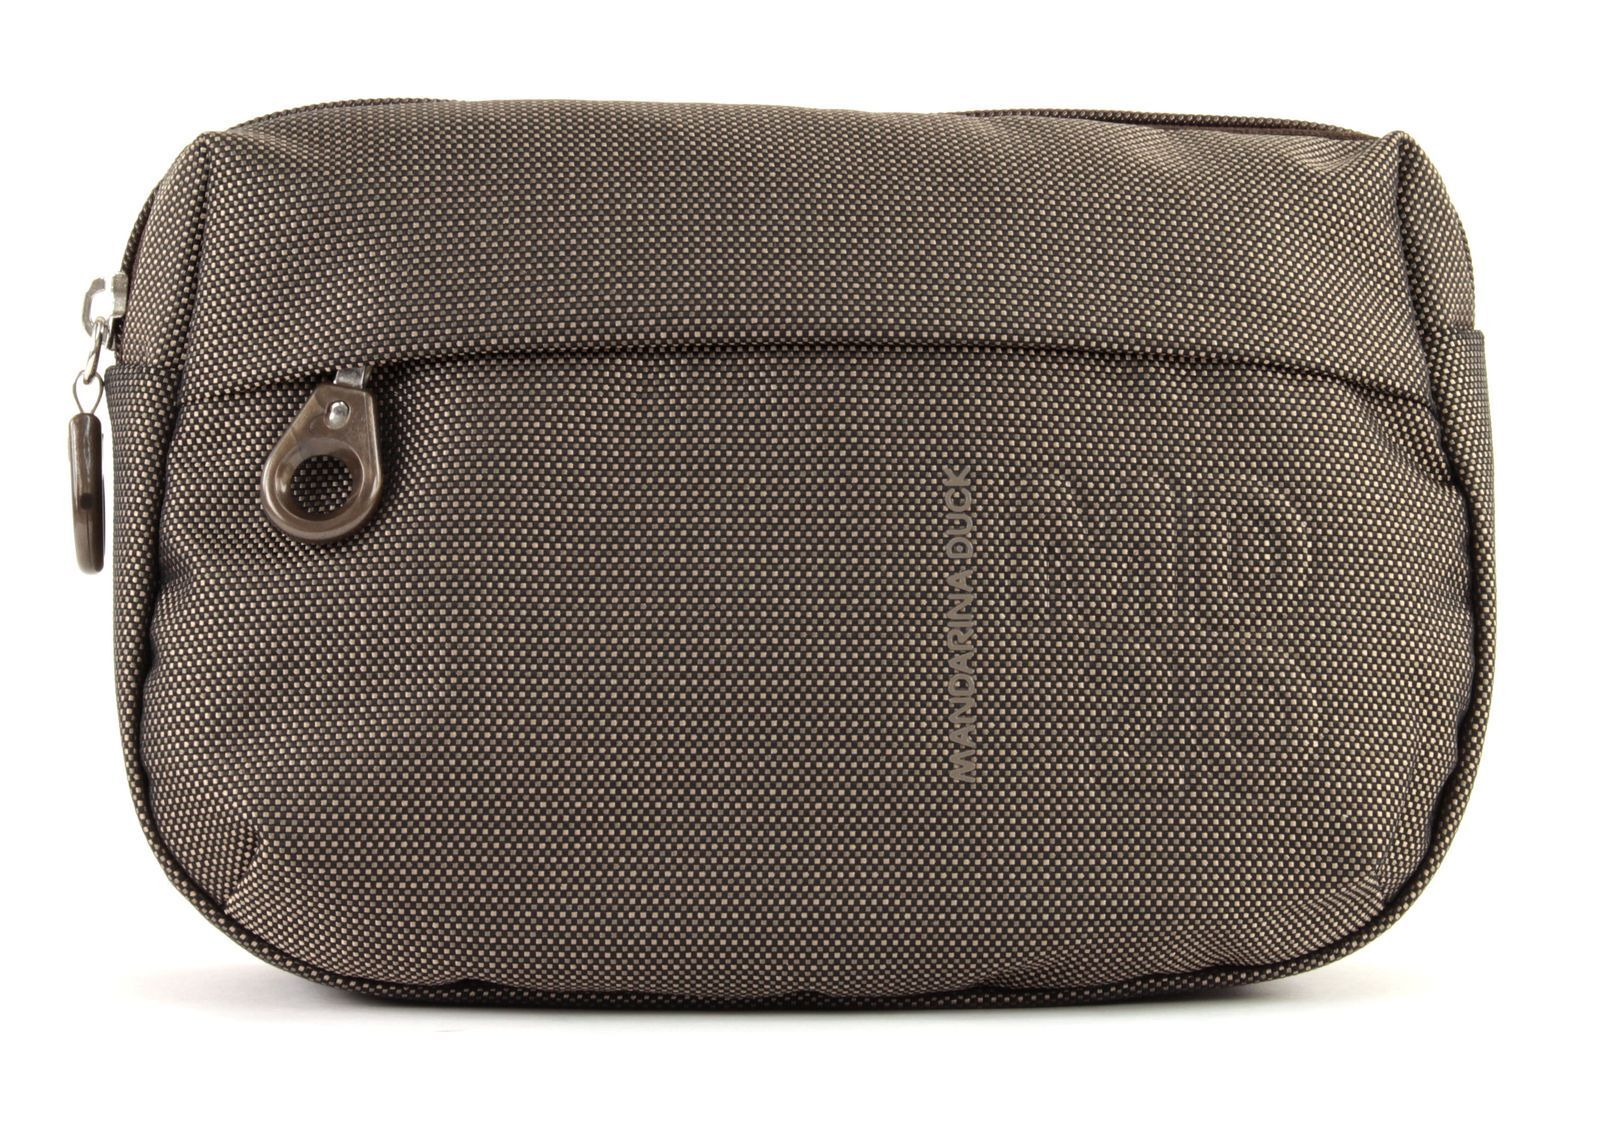 f0add18f8a1 Mandarina Duck Md20 Clutch Bag Carrier Cosmetics Compact Closed With ...